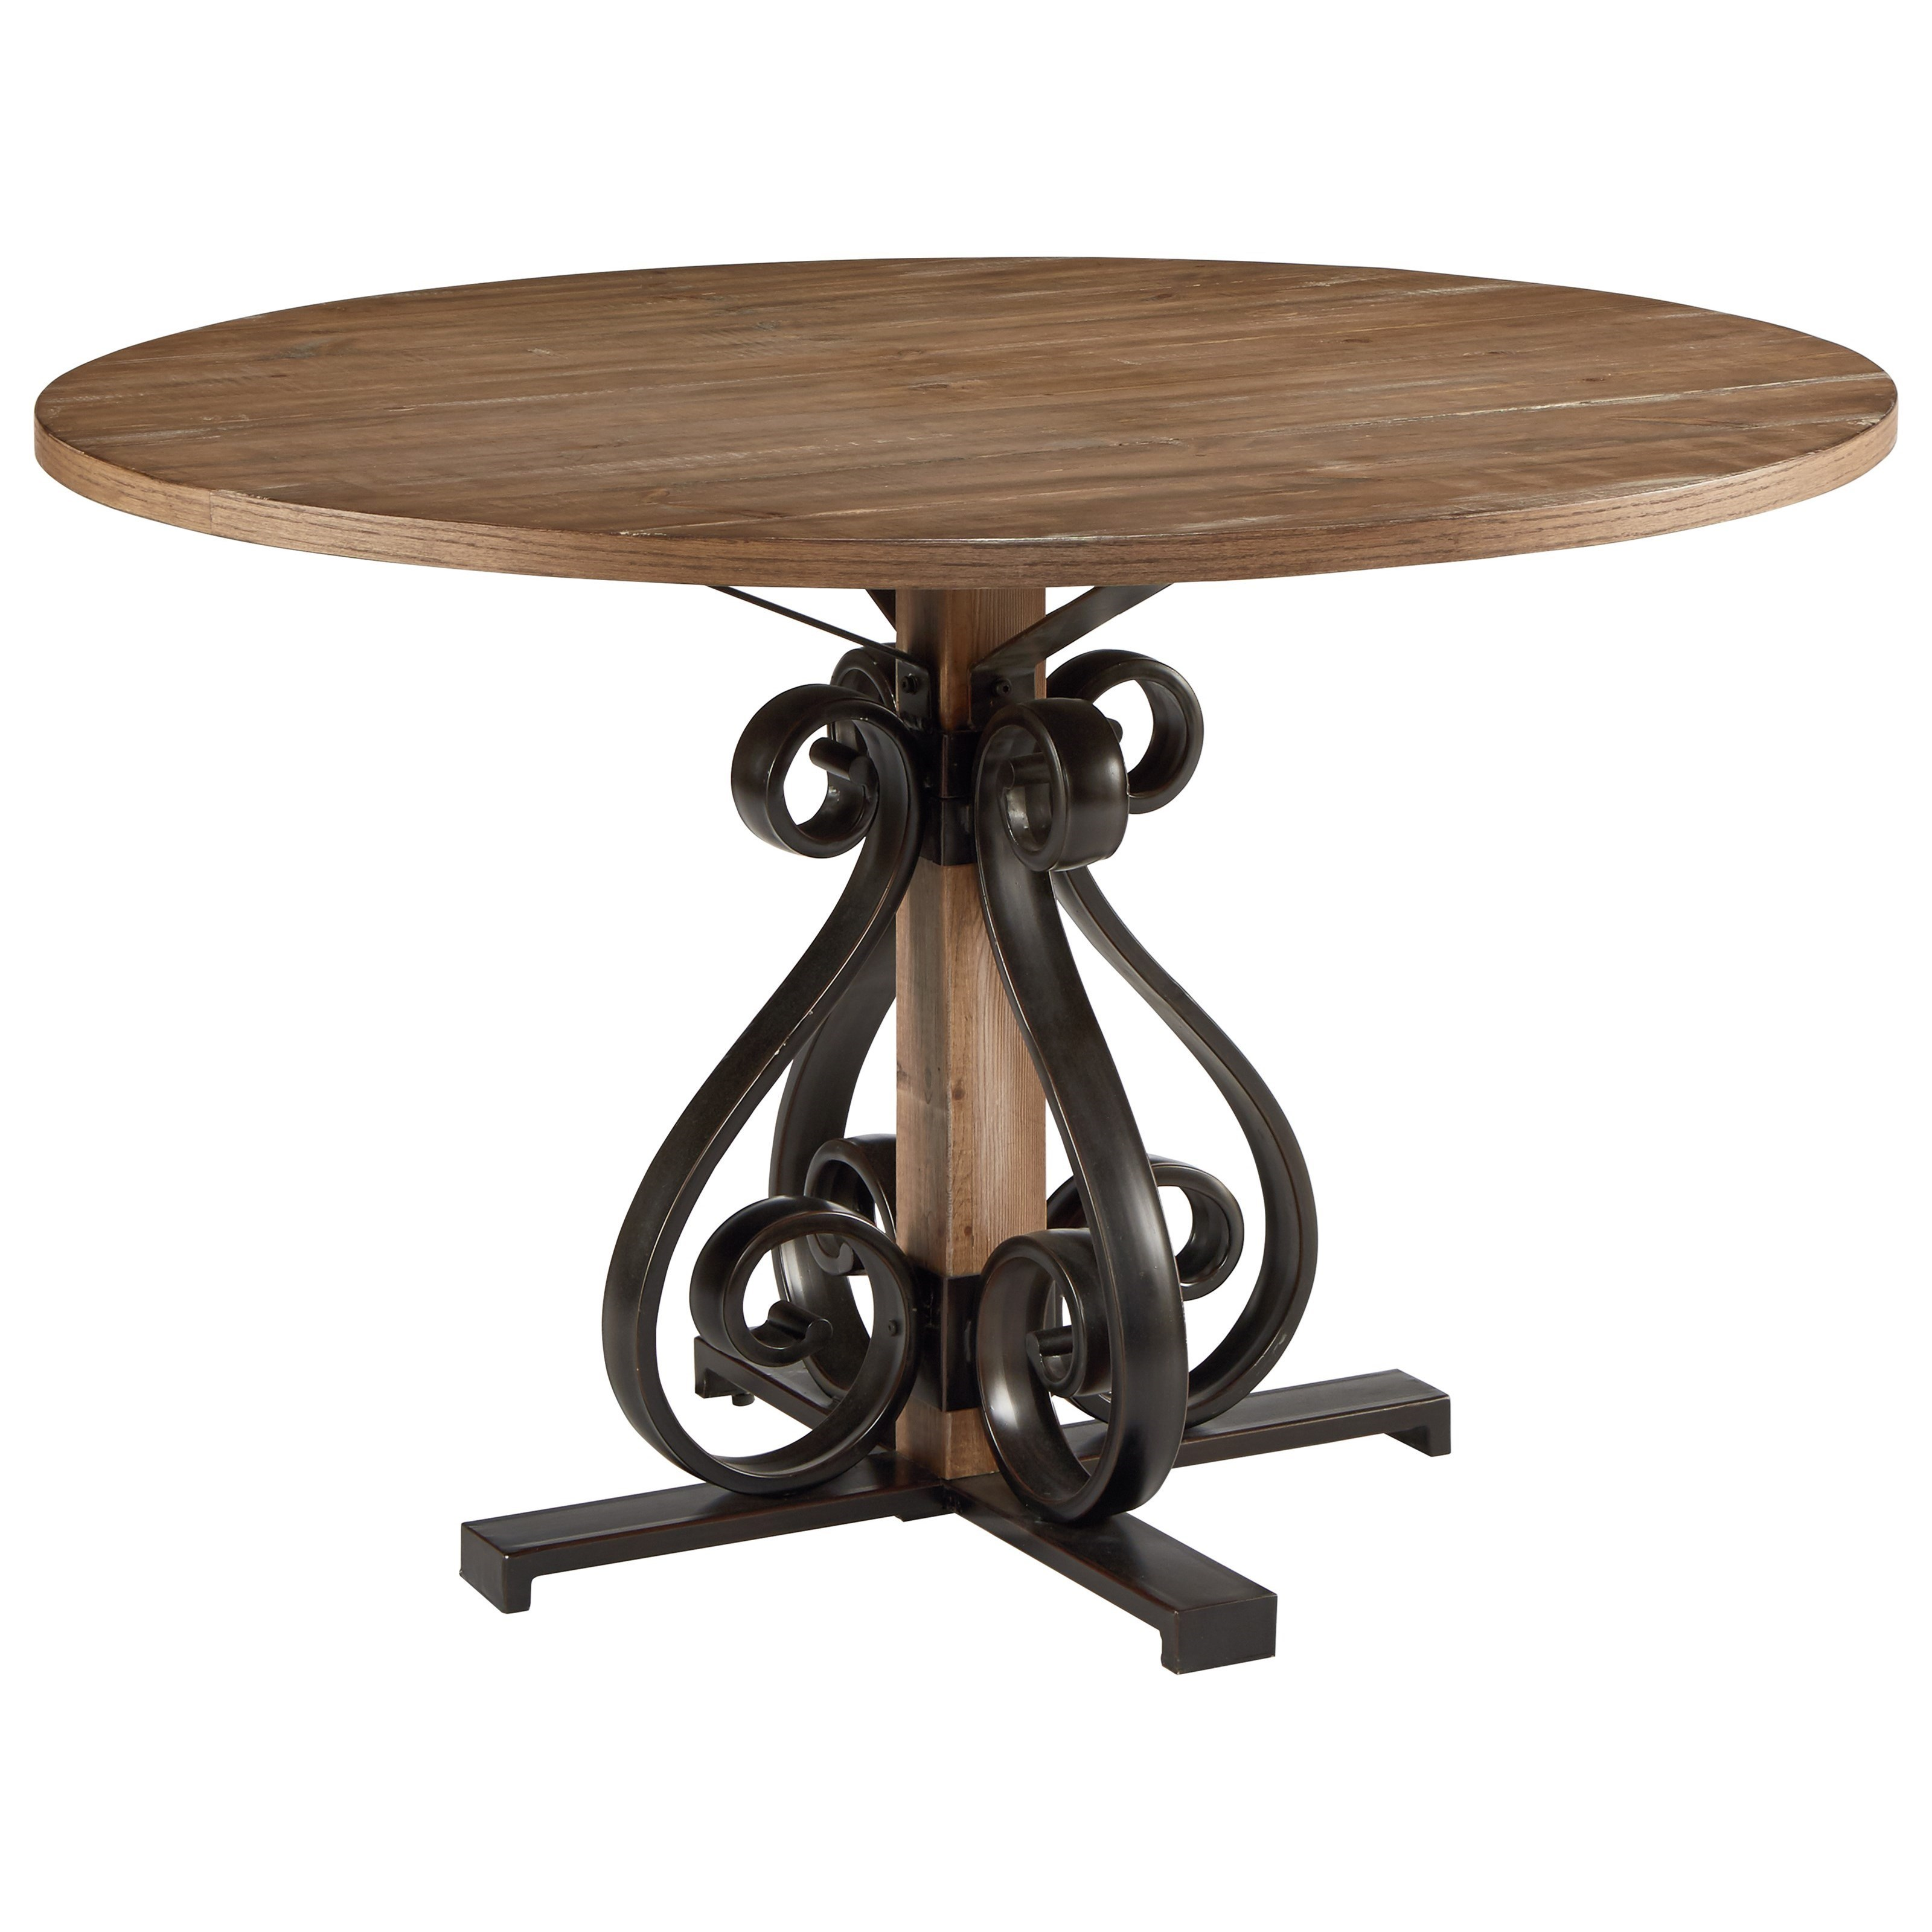 Furniture Stores Twin Cities Home Dining Room Furniture Dining Tables Magnolia Home by Joanna ...